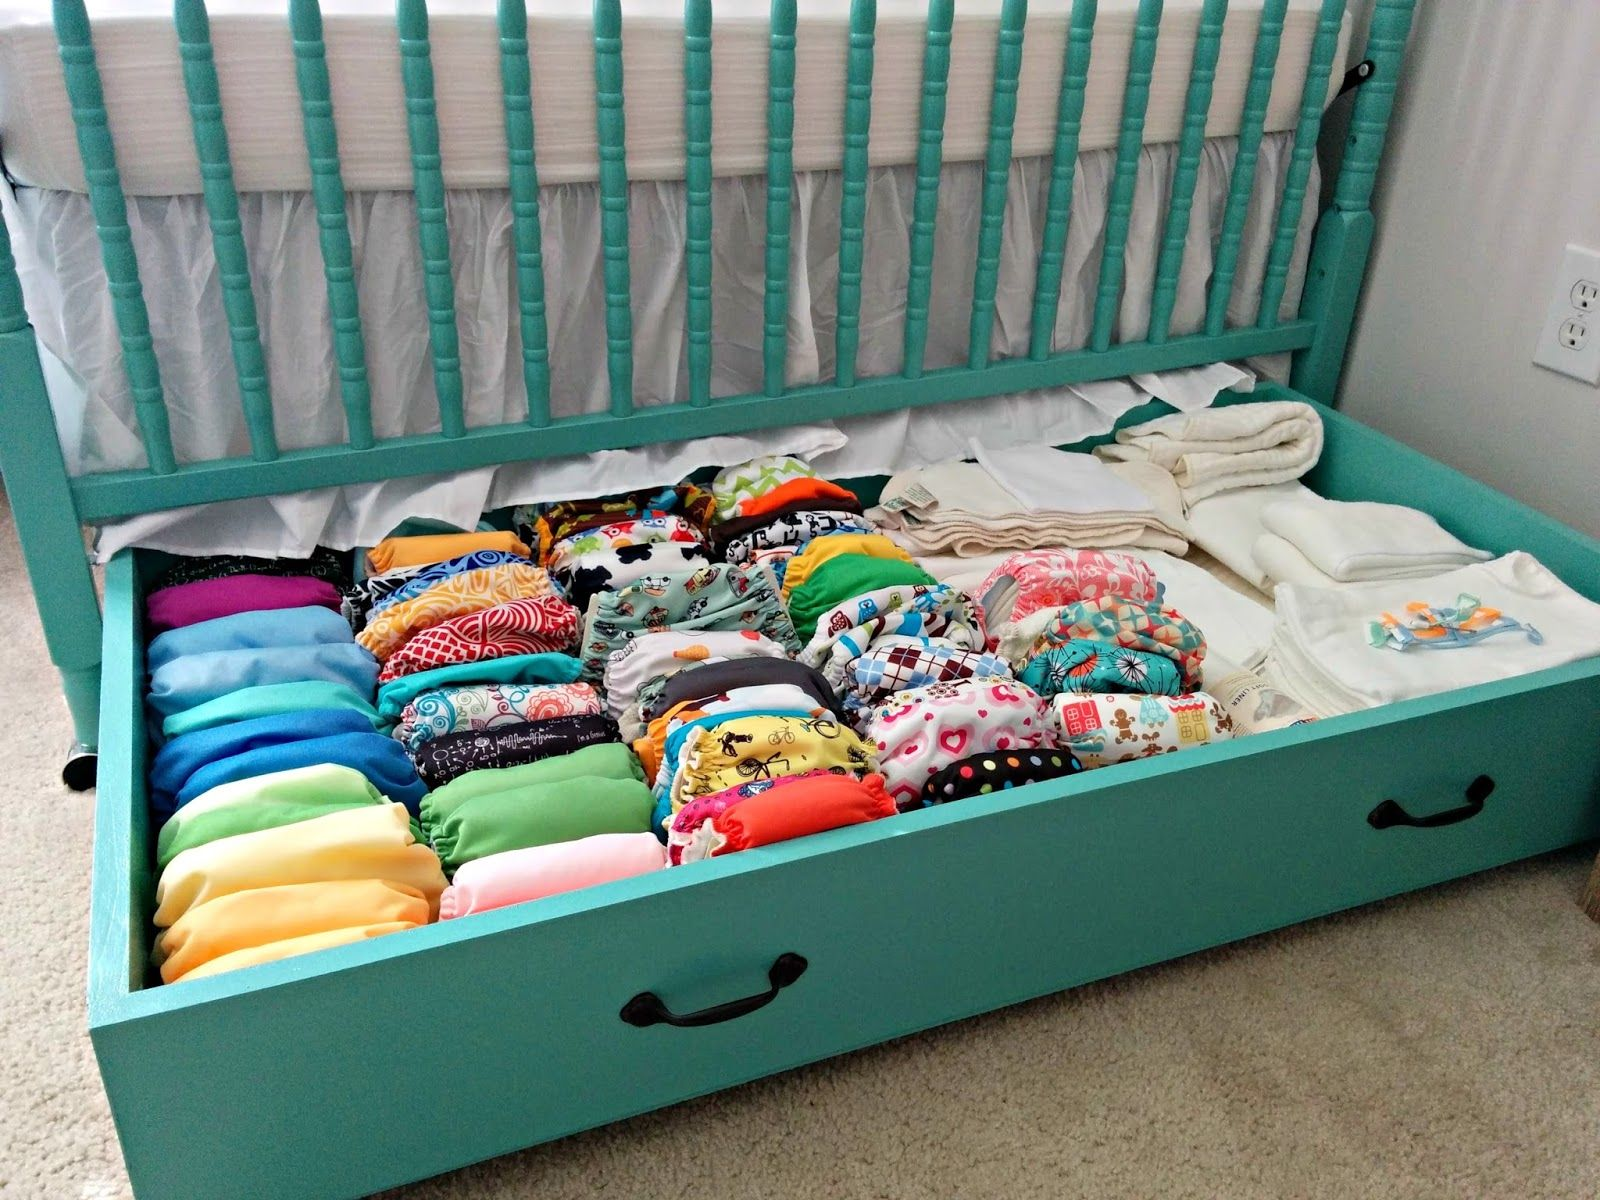 Used crib for sale atlanta - Diy Baby Nursery Organizing Idea A Simple Roll Out Container Like Used For Wrapping Paper Under The Crib Gives You A Lot More Space To Store Baby Stuff